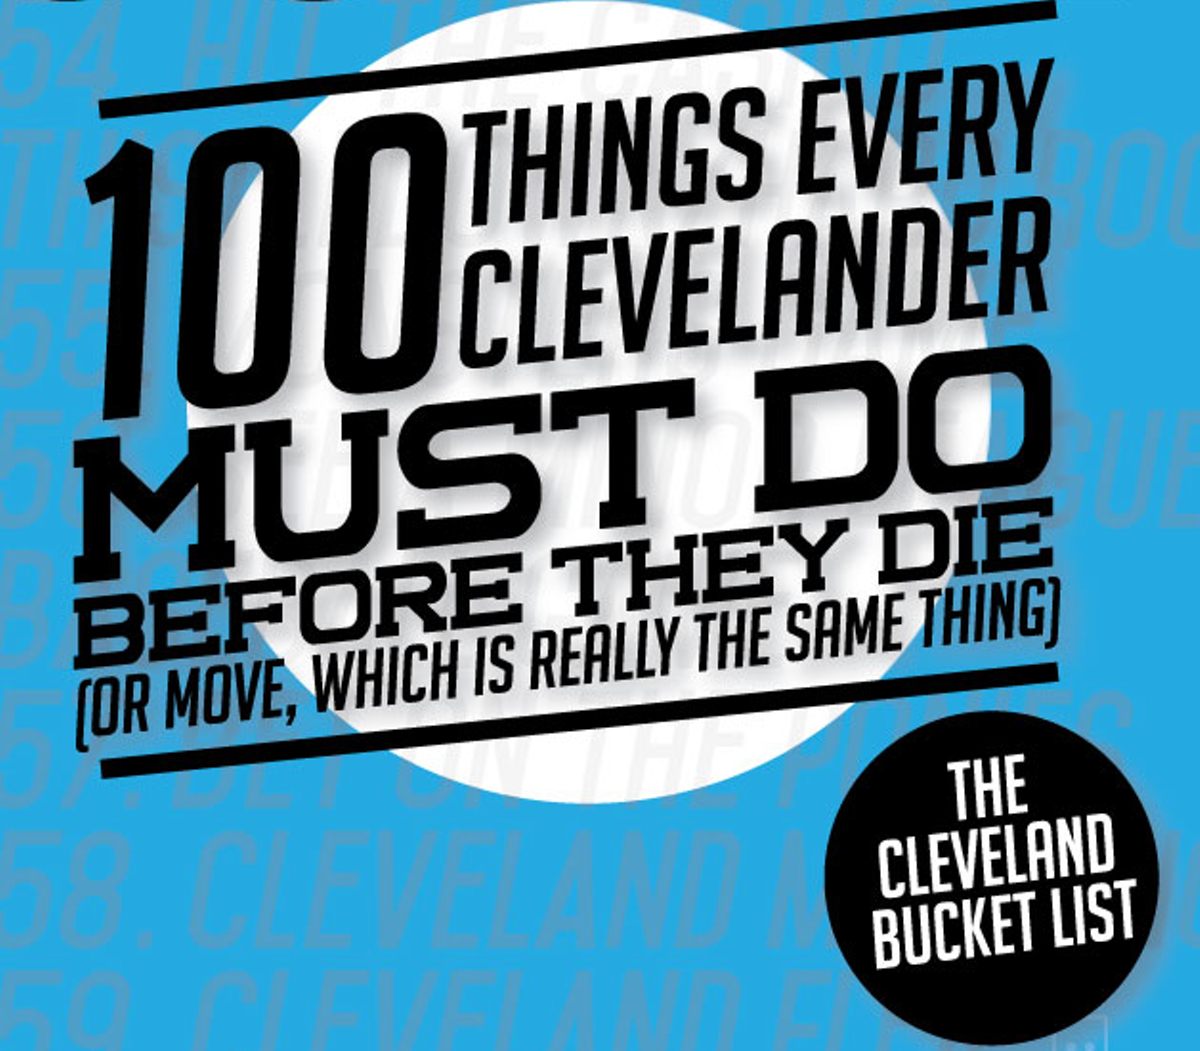 The Cleveland Bucket List 100 Things Every Clevelander Must Do Before They Die Or Move Which Is Really Same Thing